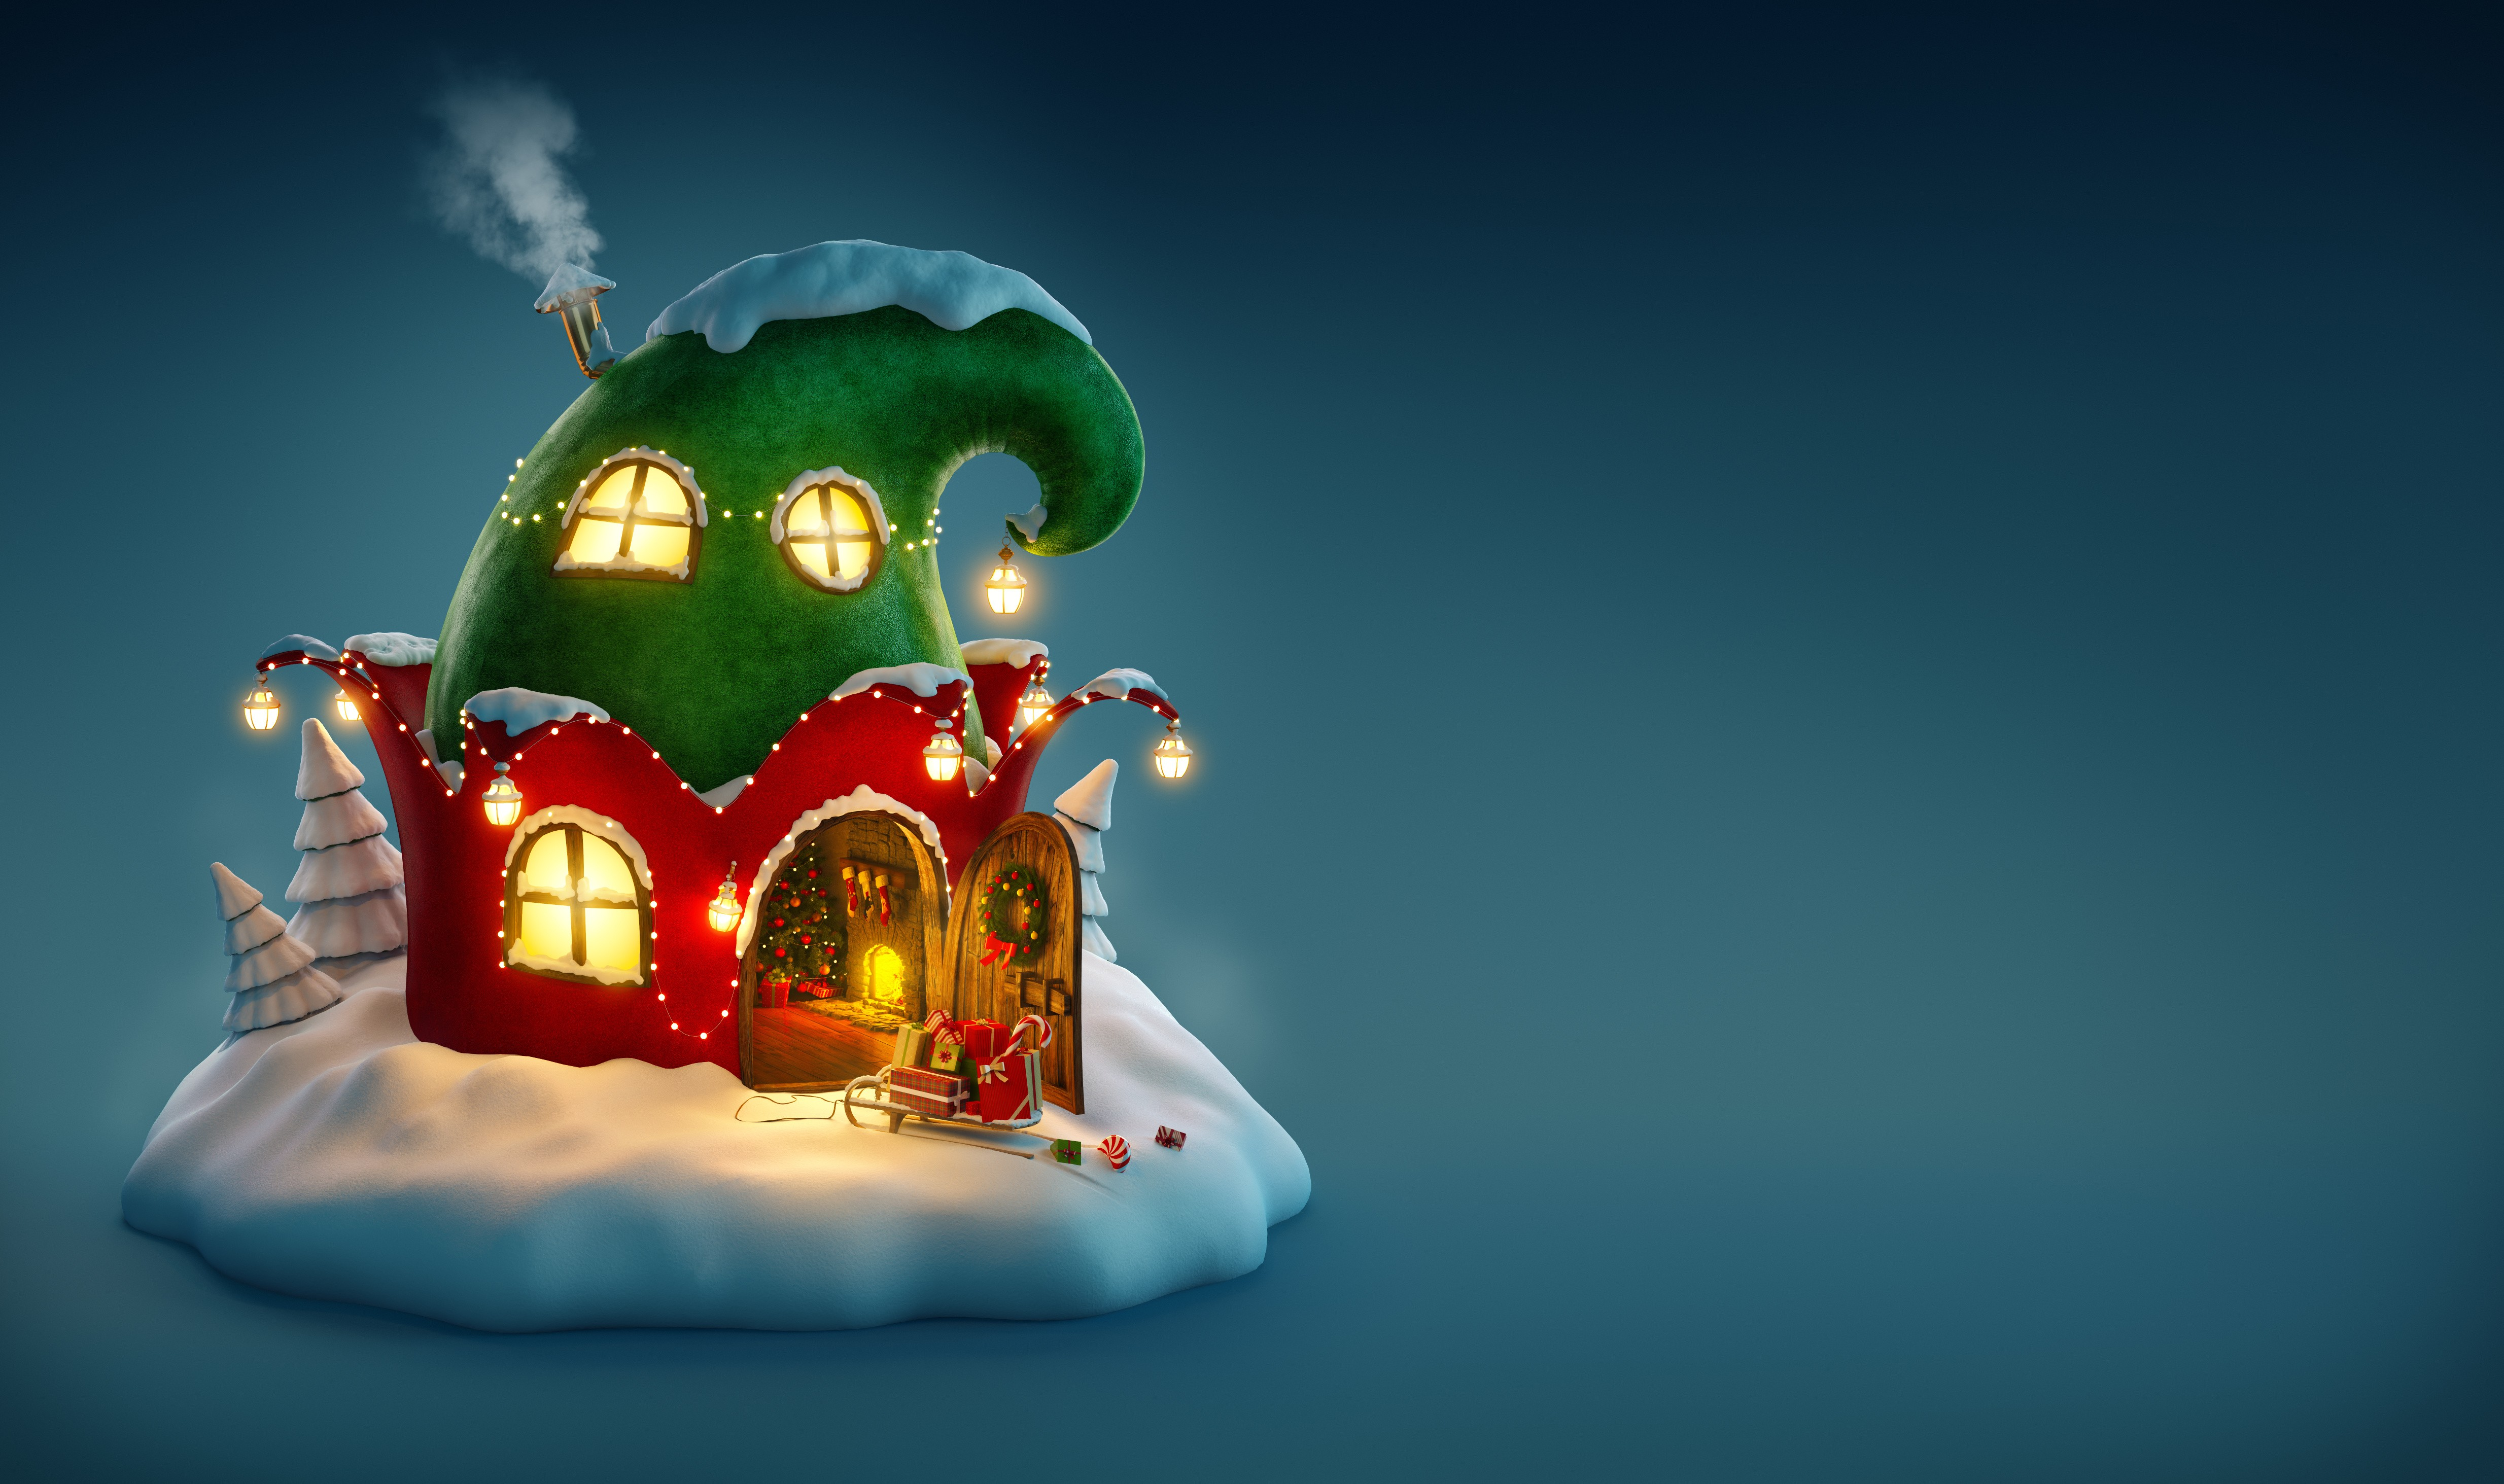 wallpaper christmas, new year, 2017, fairy house, holidays #12673